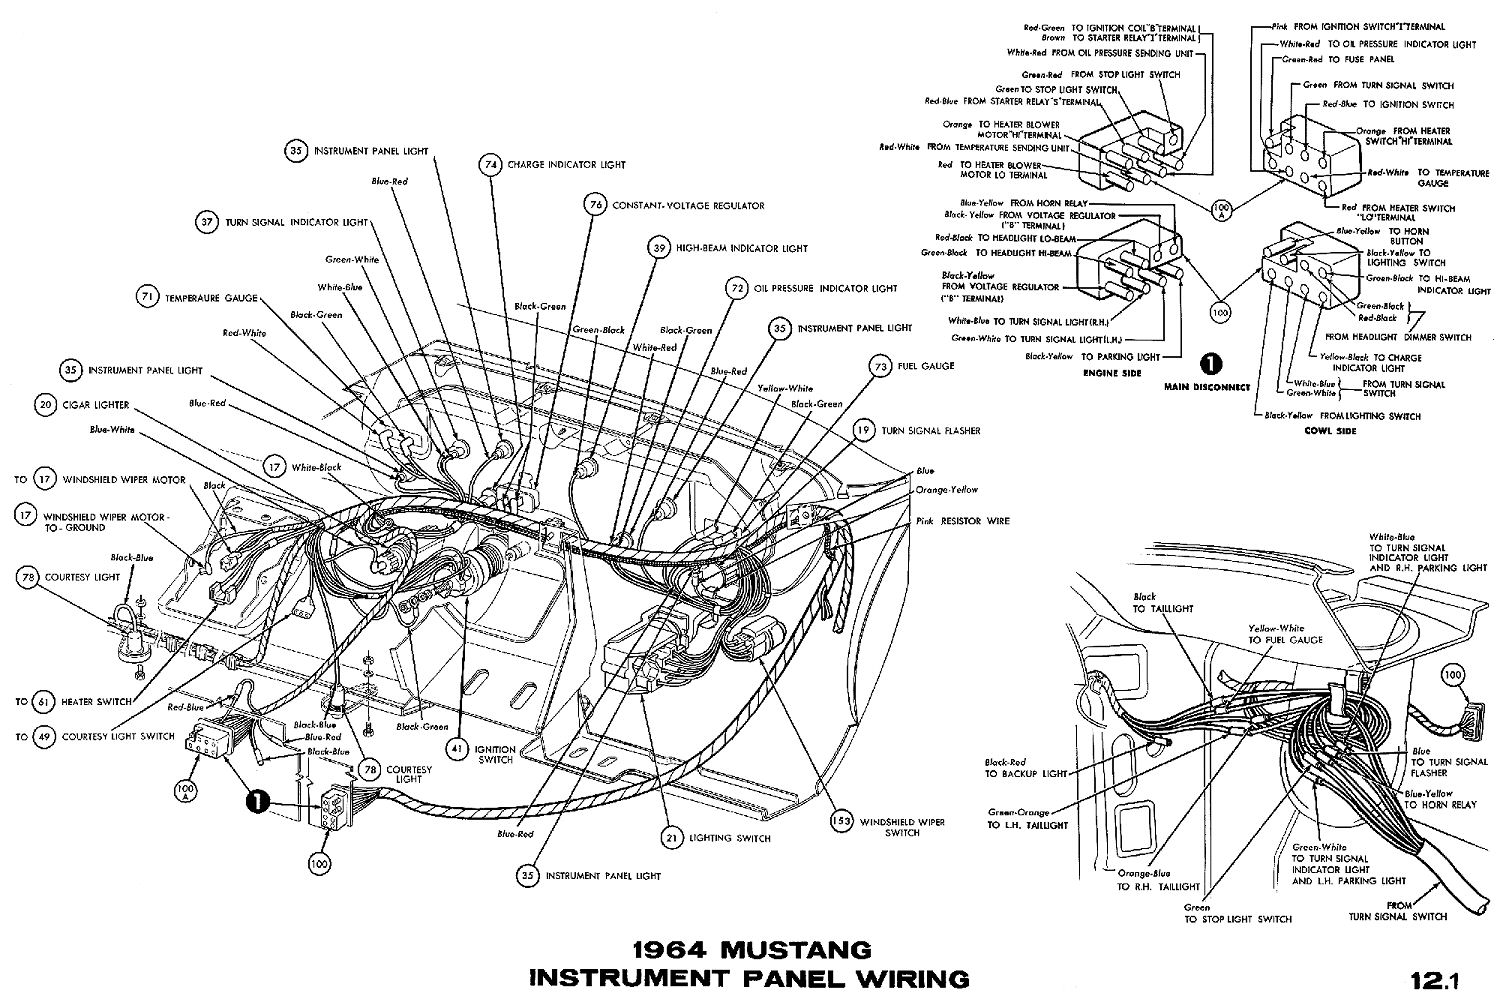 Pleasing 1964 Mustang Wiring Diagrams Average Joe Restoration Wiring Digital Resources Funiwoestevosnl